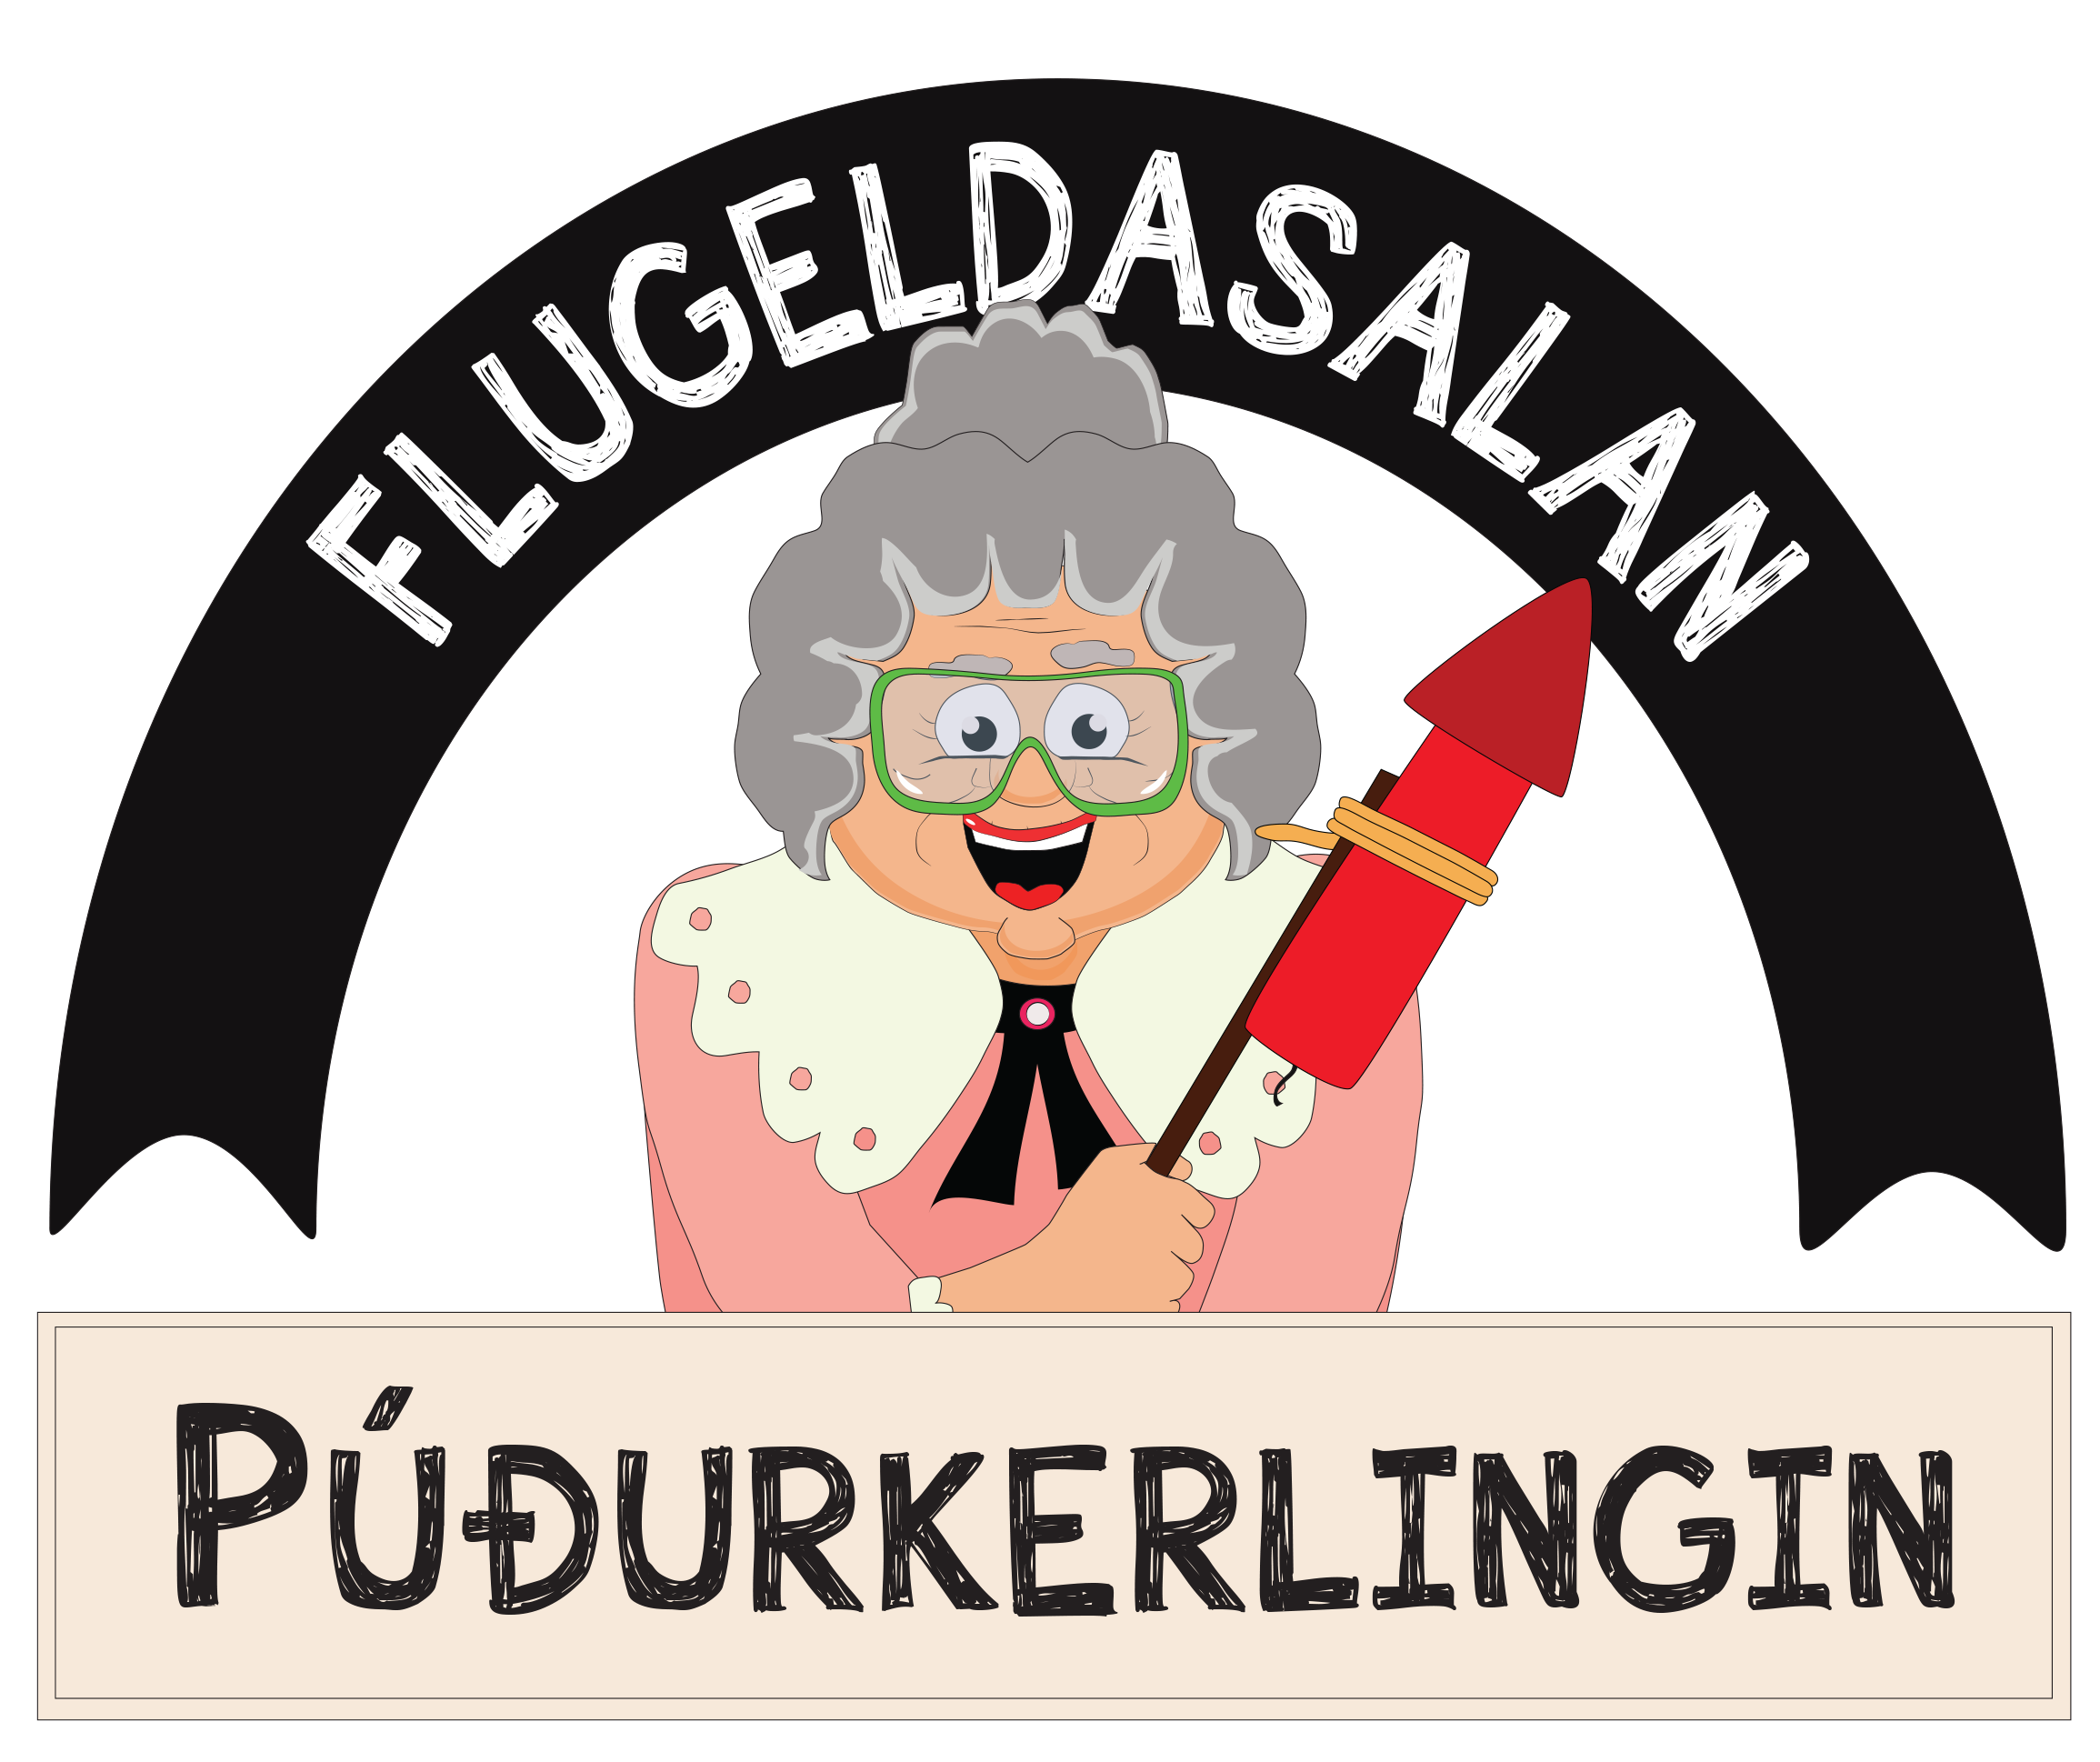 Púðurkerlingin.is